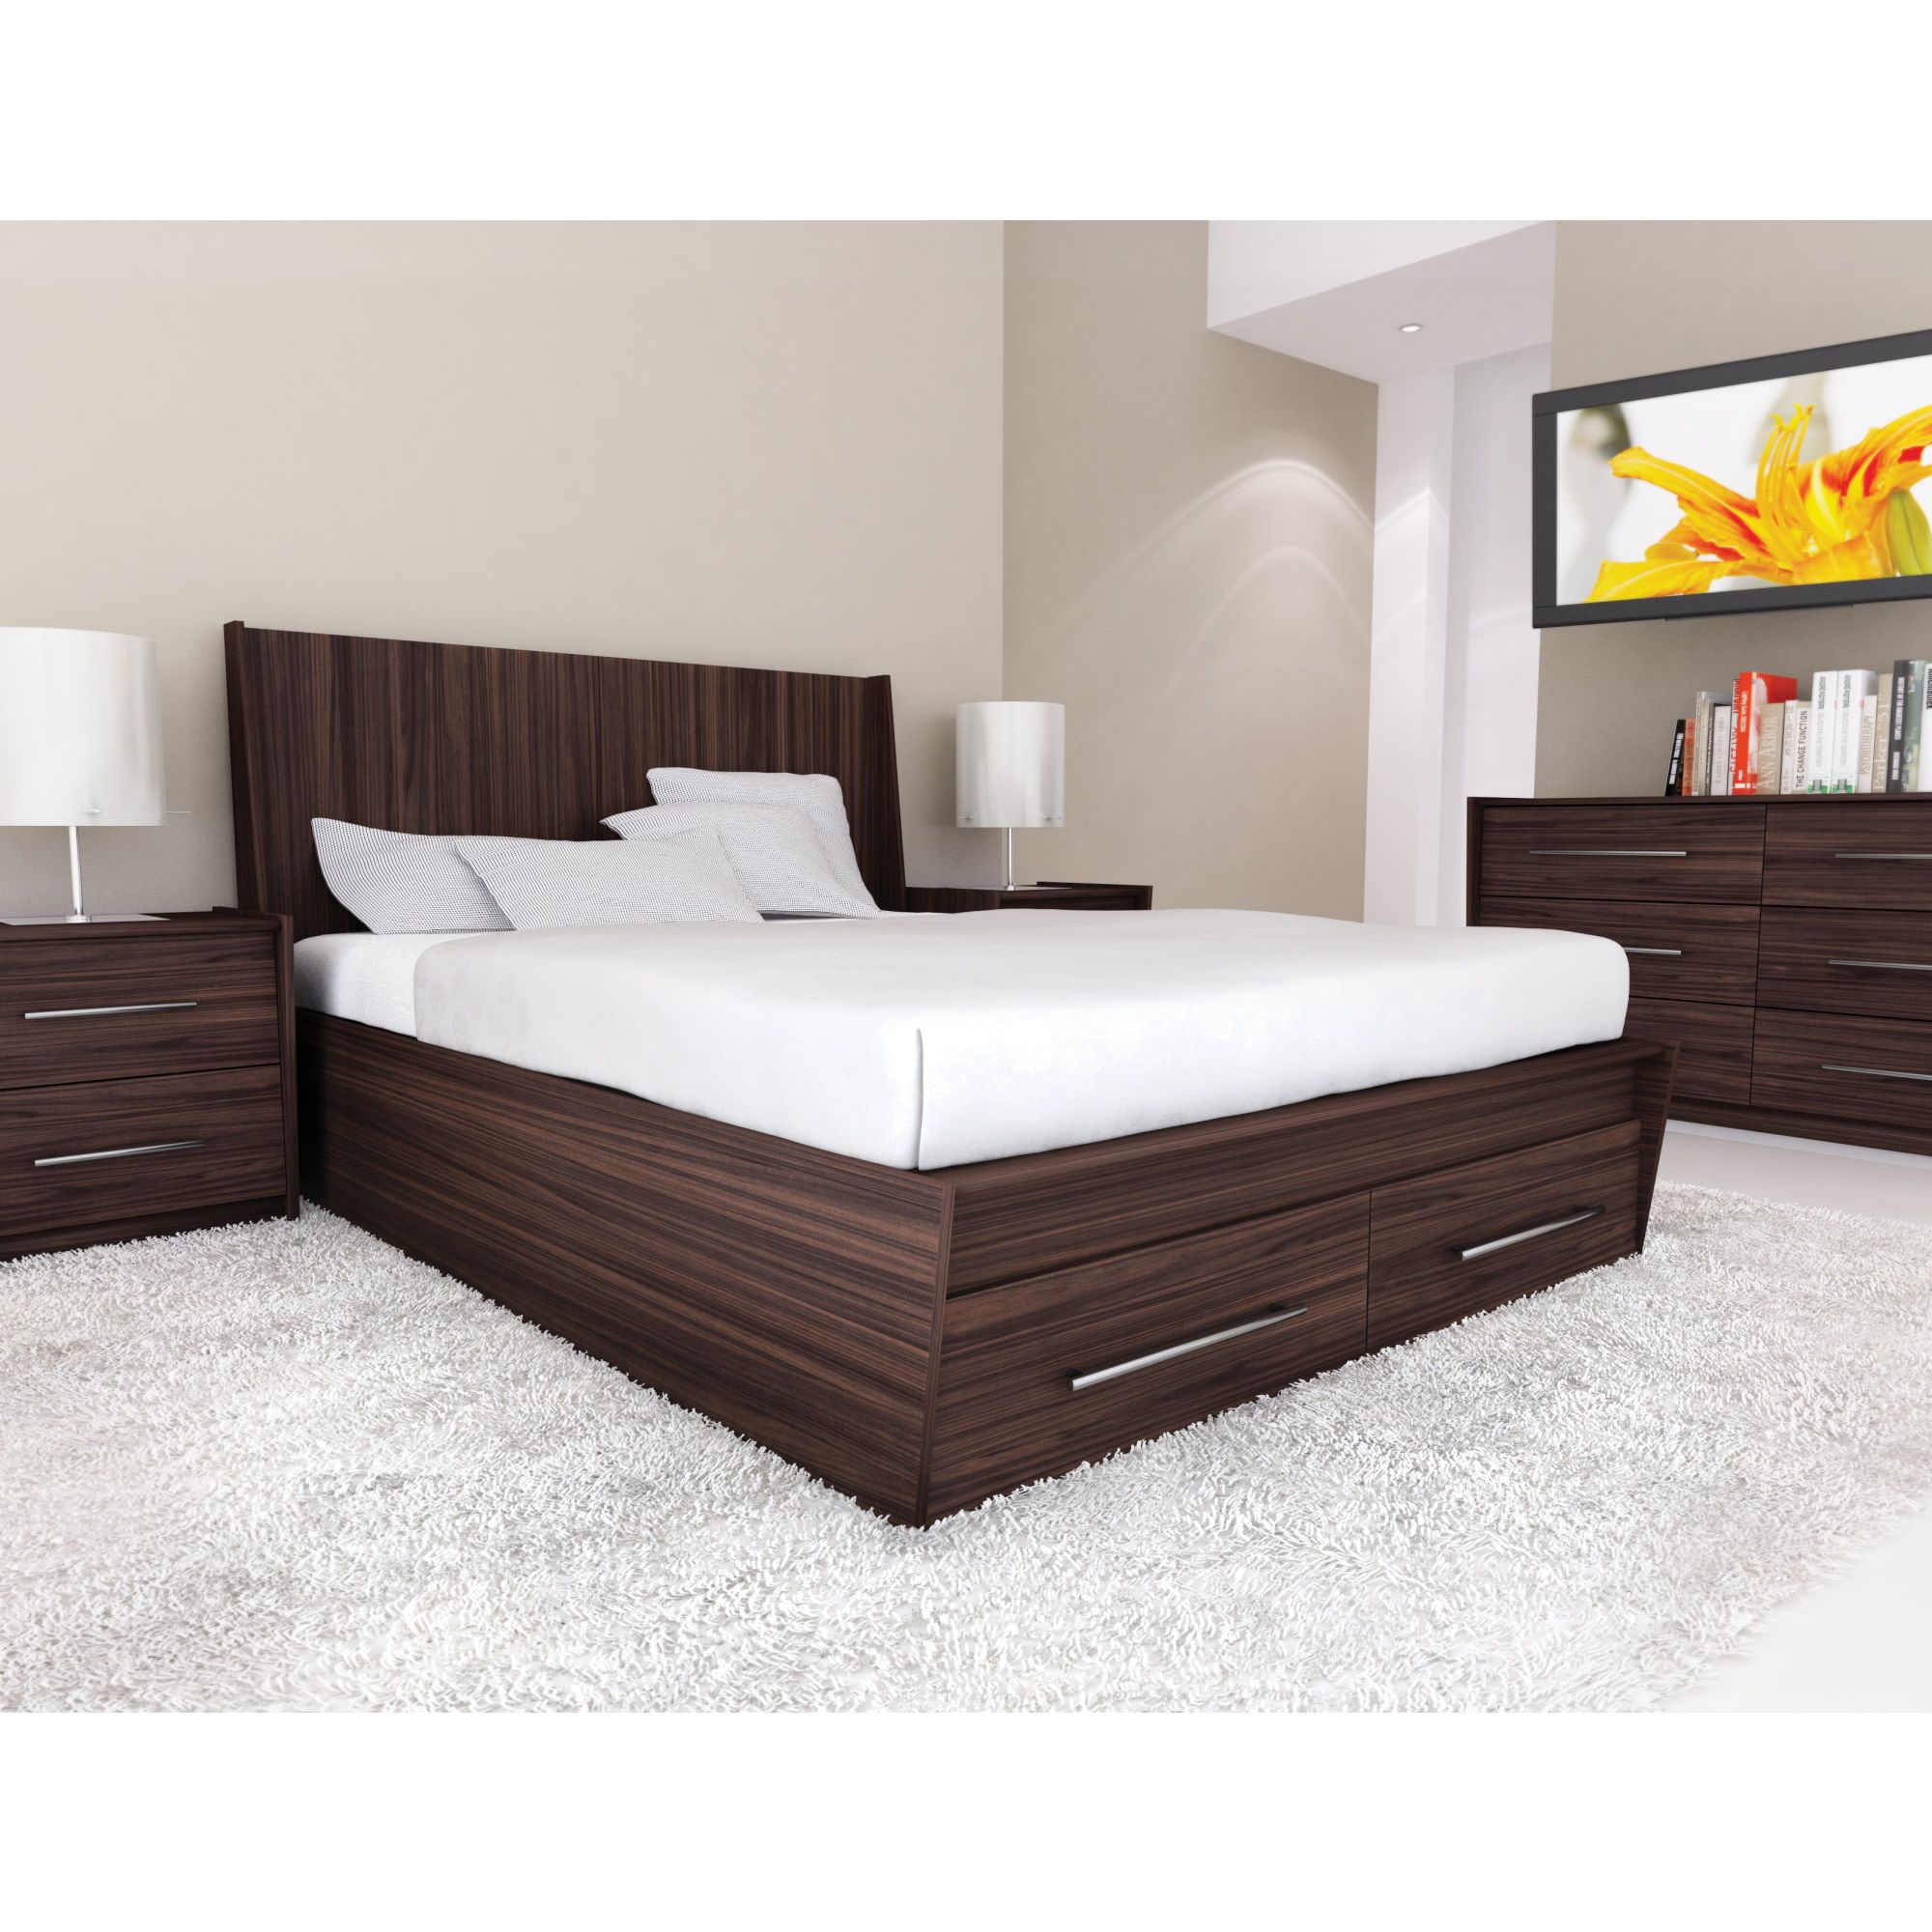 Bed designs for your comfortable bedroom interior design ideas wooden double bed designs for - Designs of double bed ...